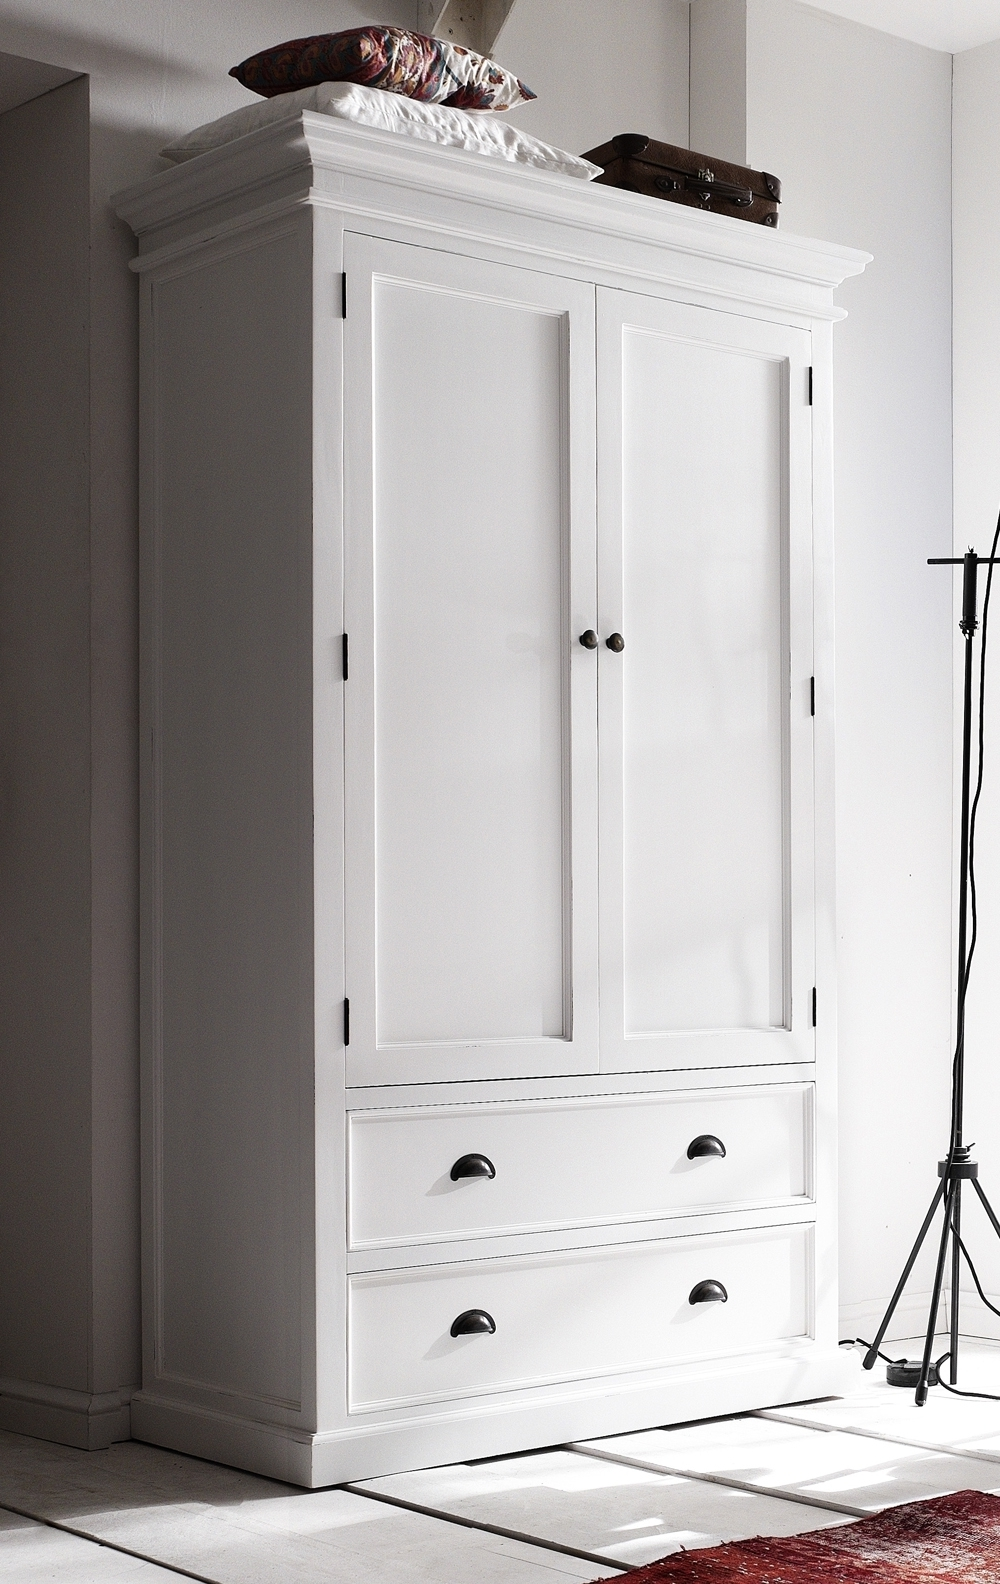 White Double Wardrobes Pertaining To Best And Newest With The Best Solution To Practical But Elegant Design, The (View 13 of 15)